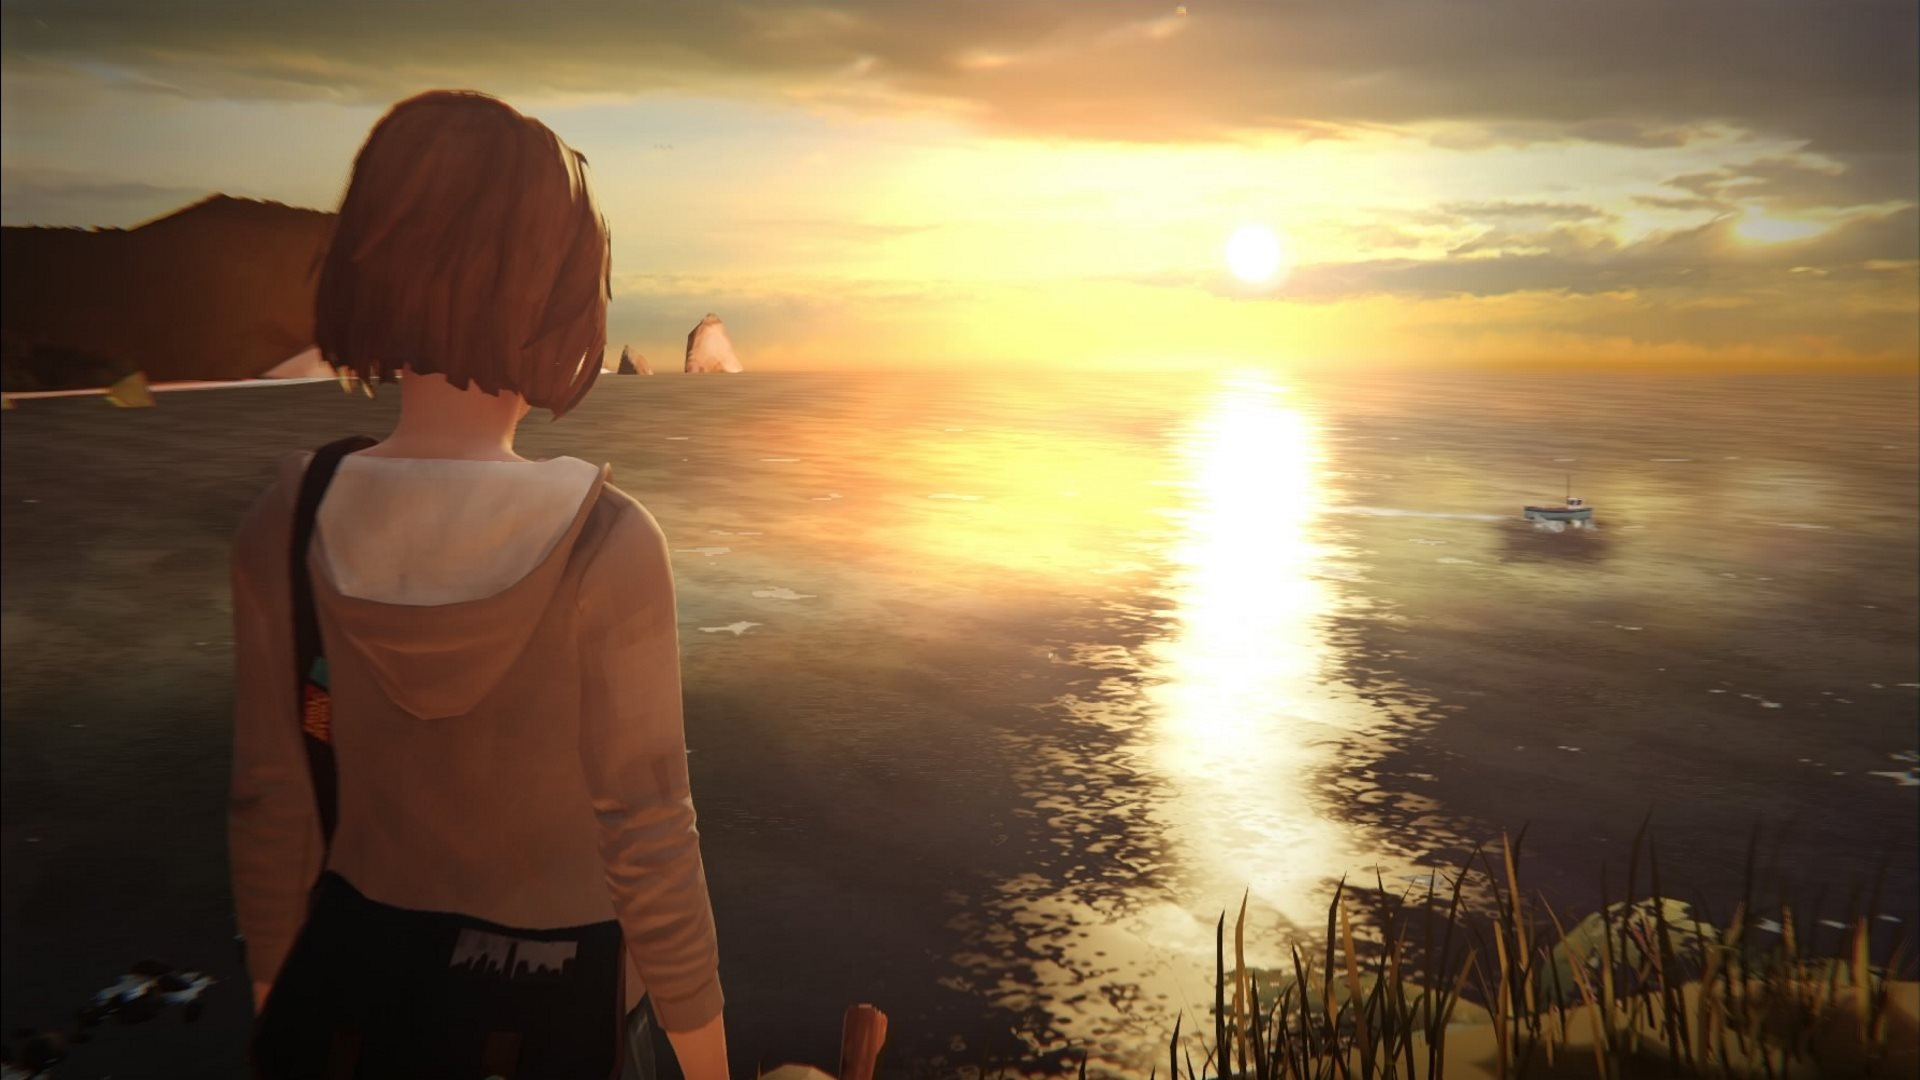 Life Is Strange 2 Wallpaper: LIFE Is STRANGE Drama Graphic Adventure Supernatural 1lis